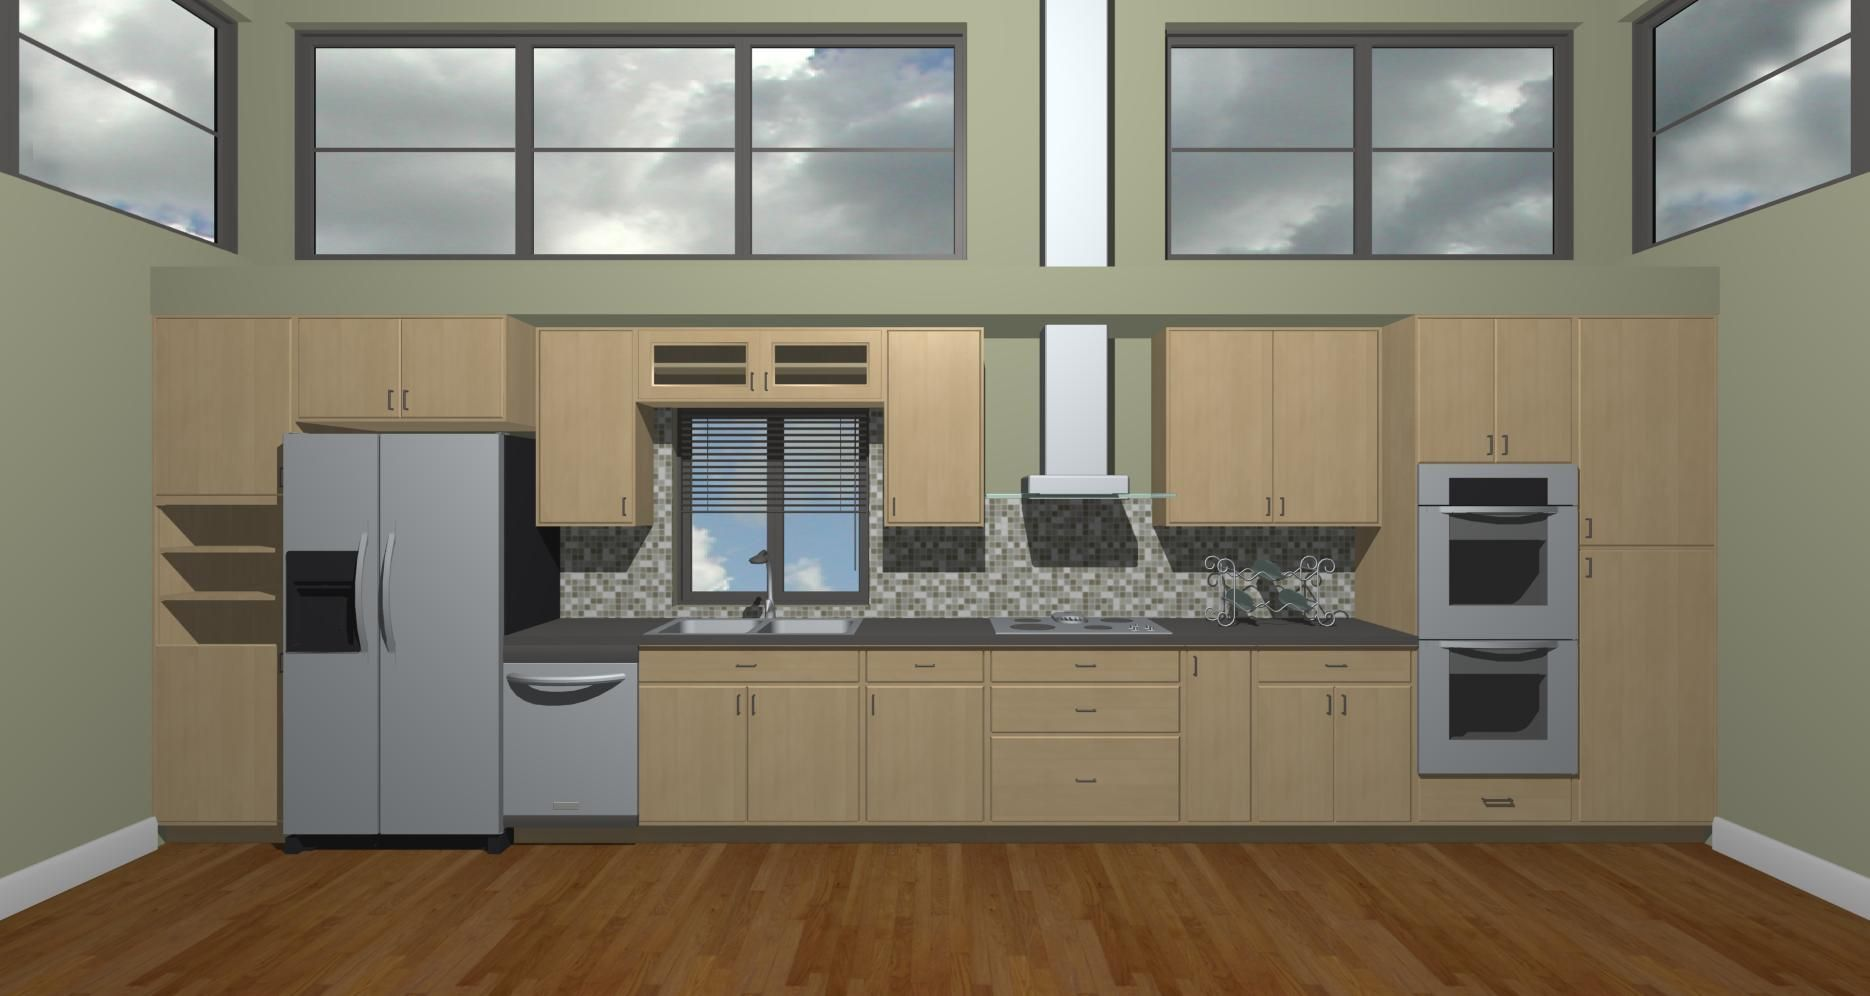 Straight Line Kitchen  layout?? Hmmm  For the Home  Pinterest